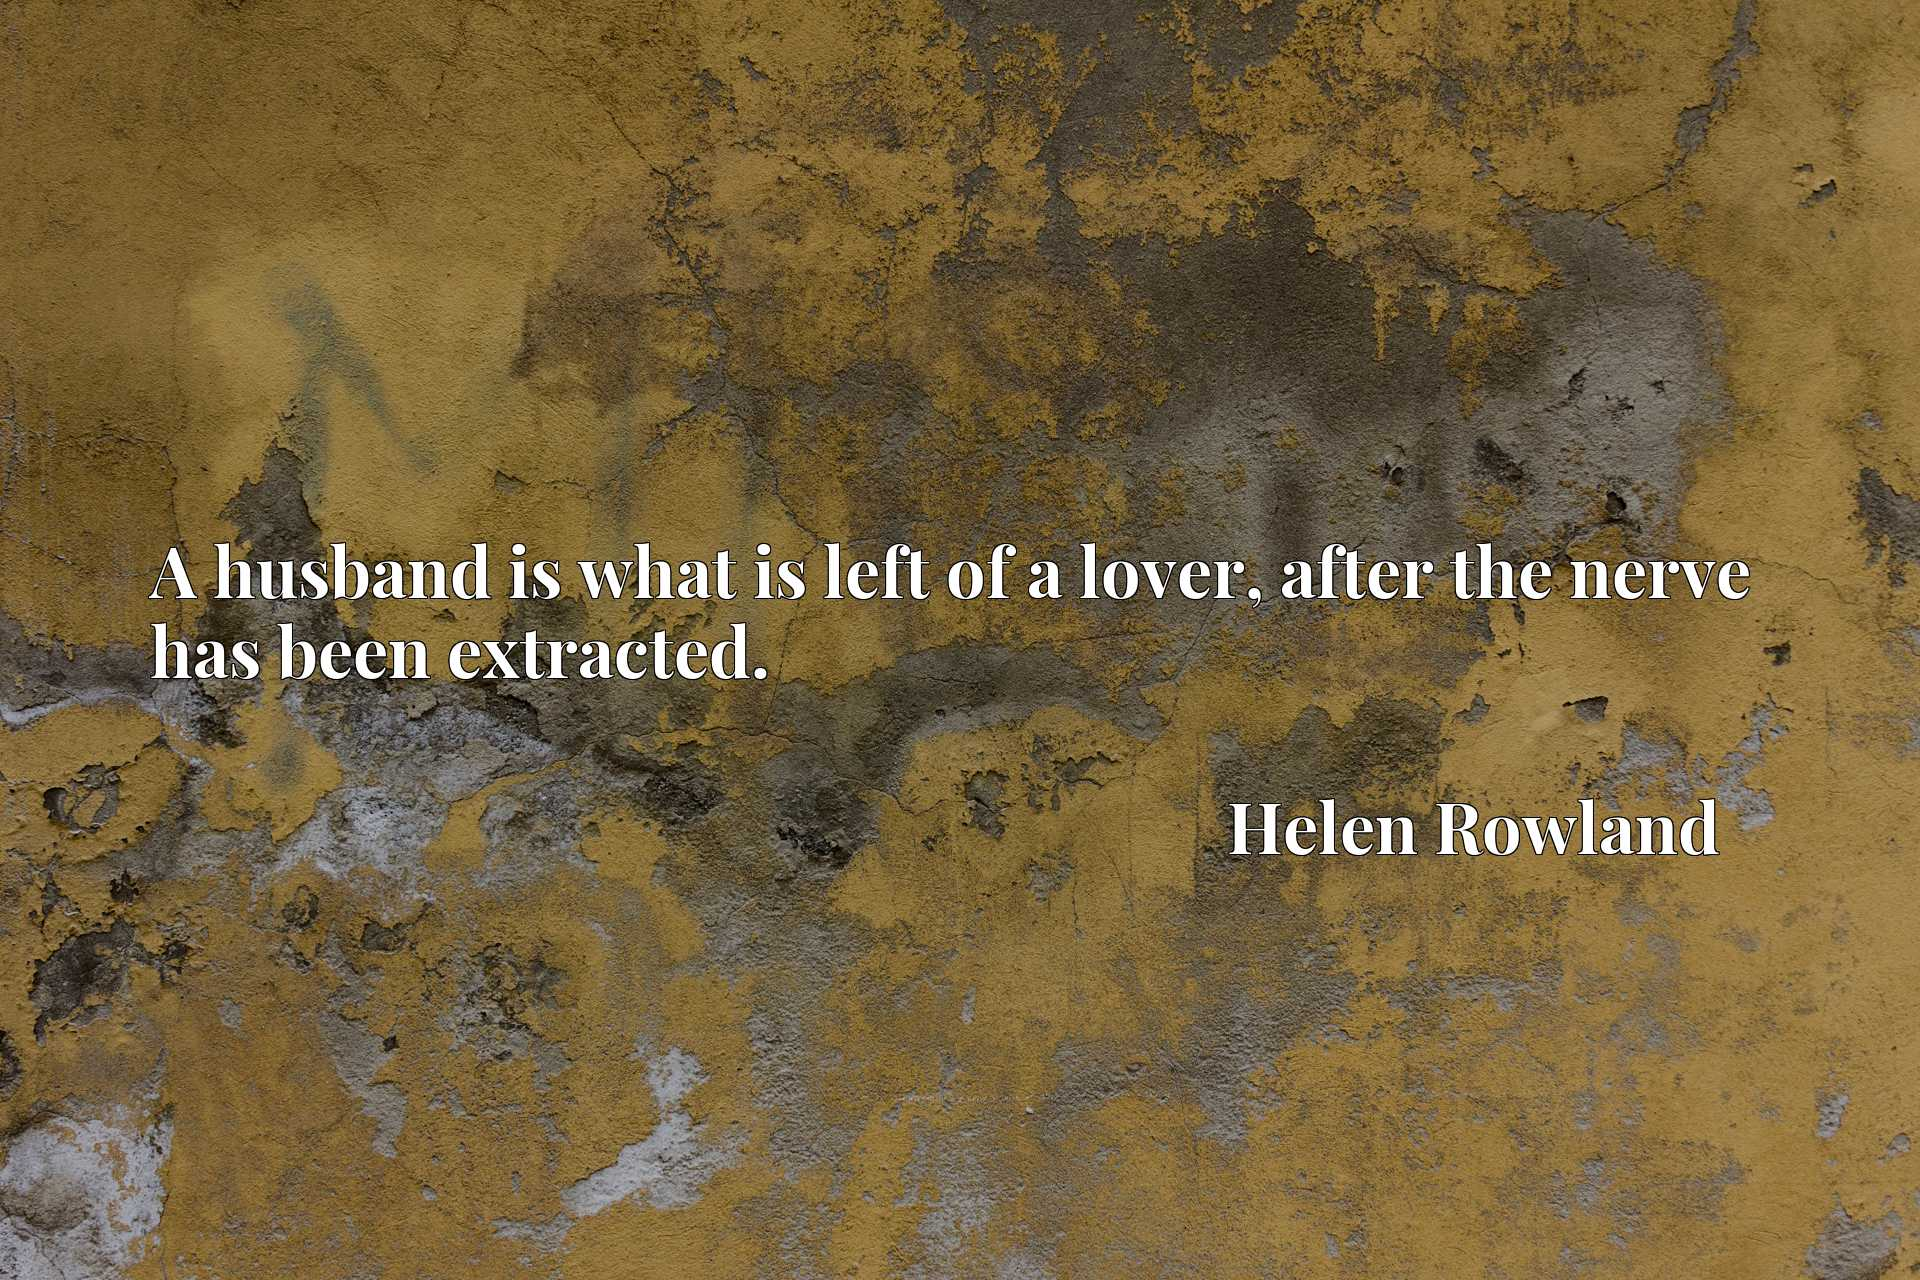 Quote Picture :A husband is what is left of a lover, after the nerve has been extracted.